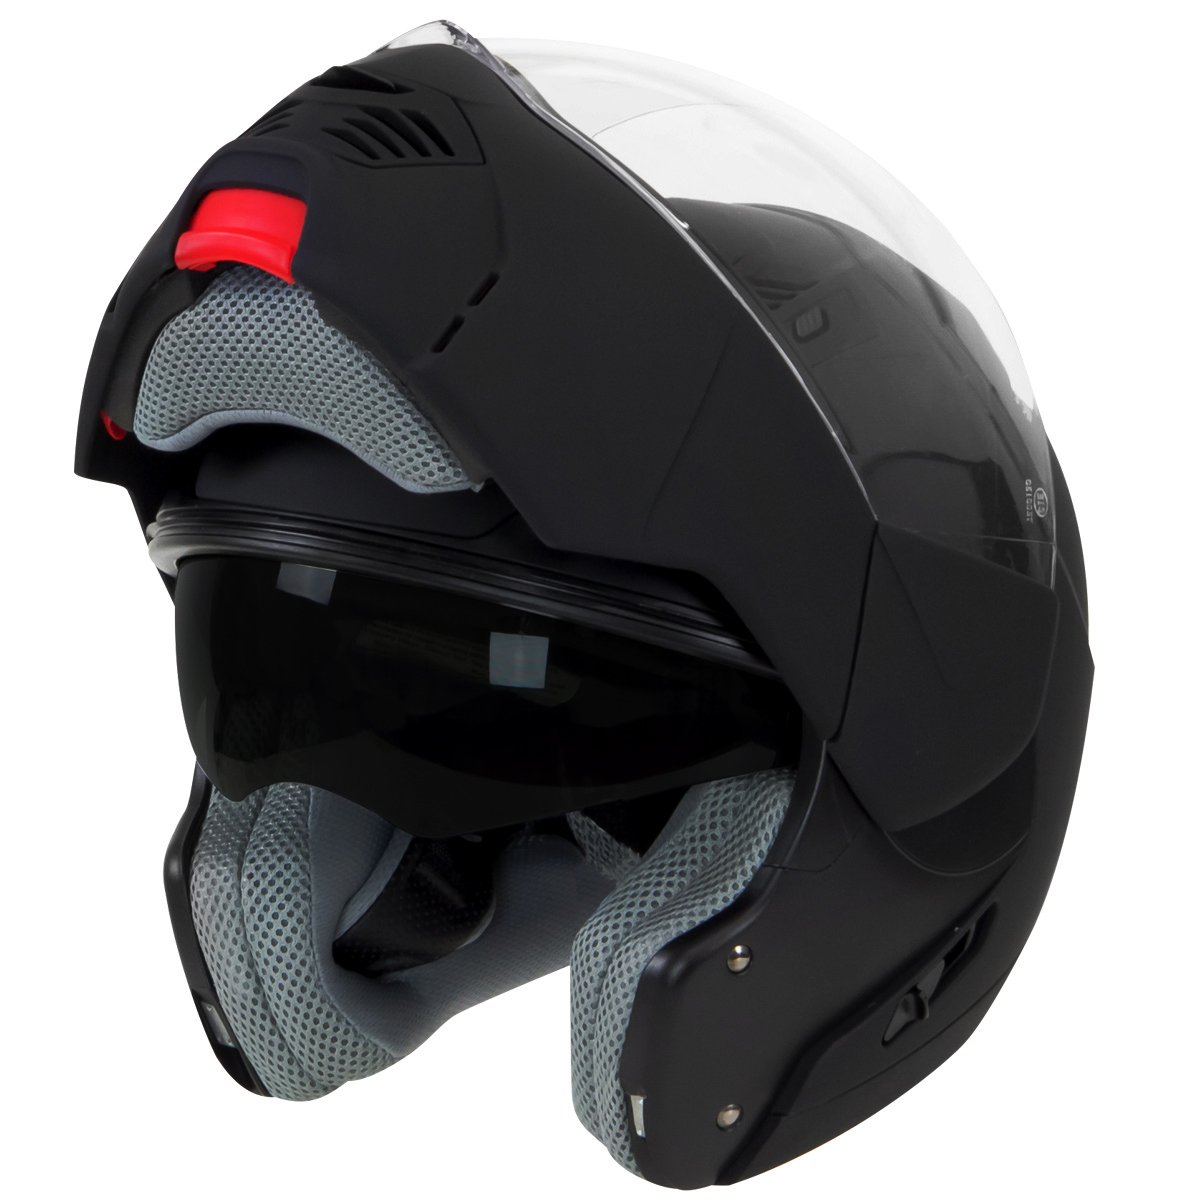 Amazon.com: Hawk ST-1197 InFlux Black 2 in 1 Modular Helmet - X-Large: Automotive